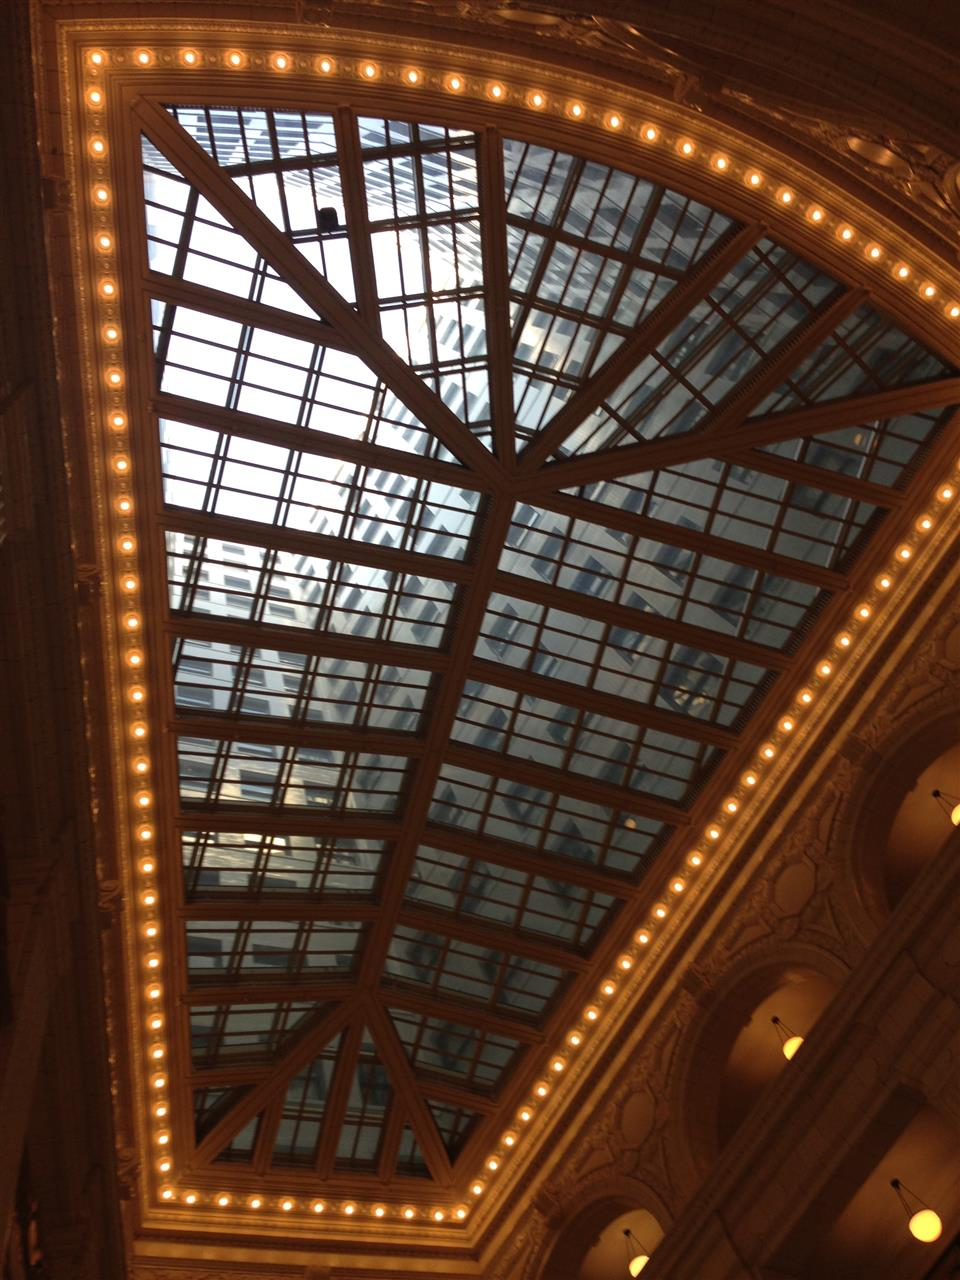 Ceiling in the restored David Whitney Building lobby. The David Whitney Building is a historic class-A skyscraper located within the Grand Circus Park Historic District ~ Detroit, Michigan #LeadingRElocal #Detroit #Michigan